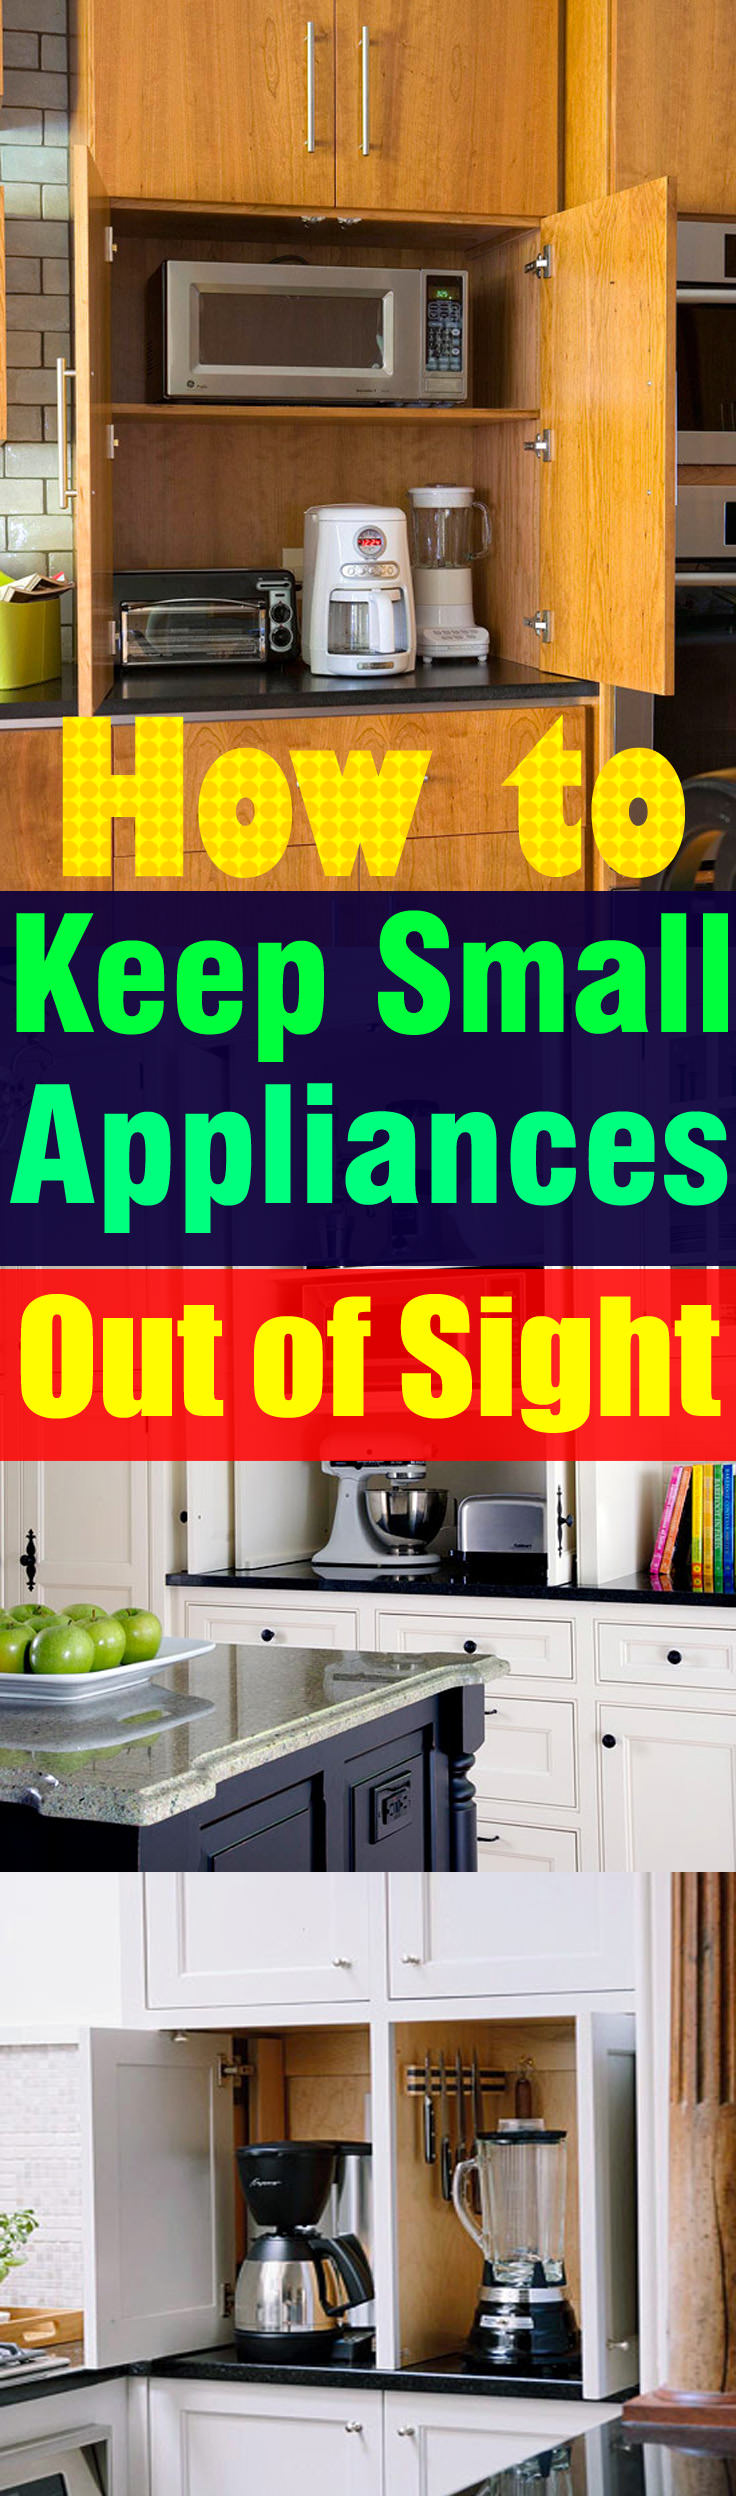 Kitchen Small Appliance Stores How To Keep Small Appliances Out Of Sight O Veryhom